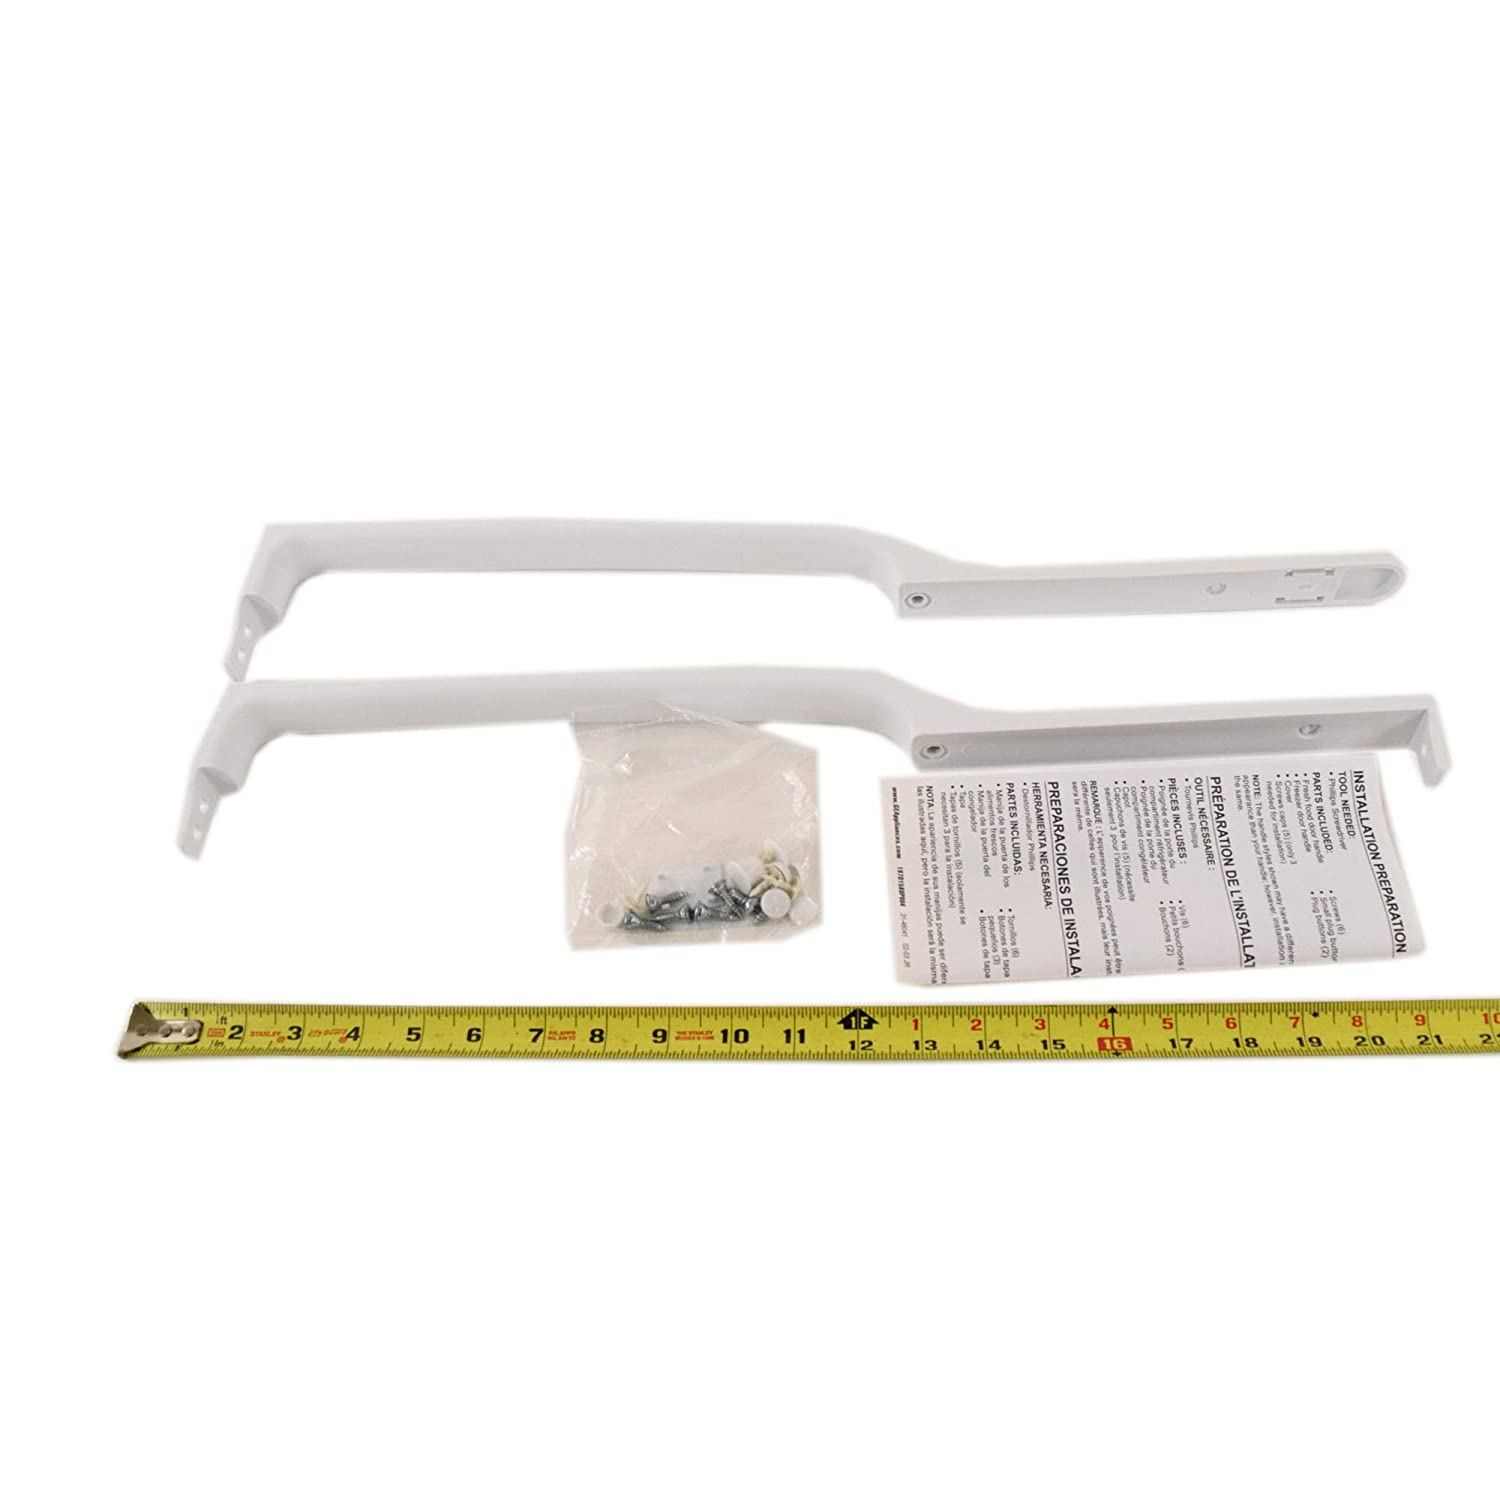 Amazon.com: GE WR12X10760 Parts Handle Small Assembly: Home Improvement